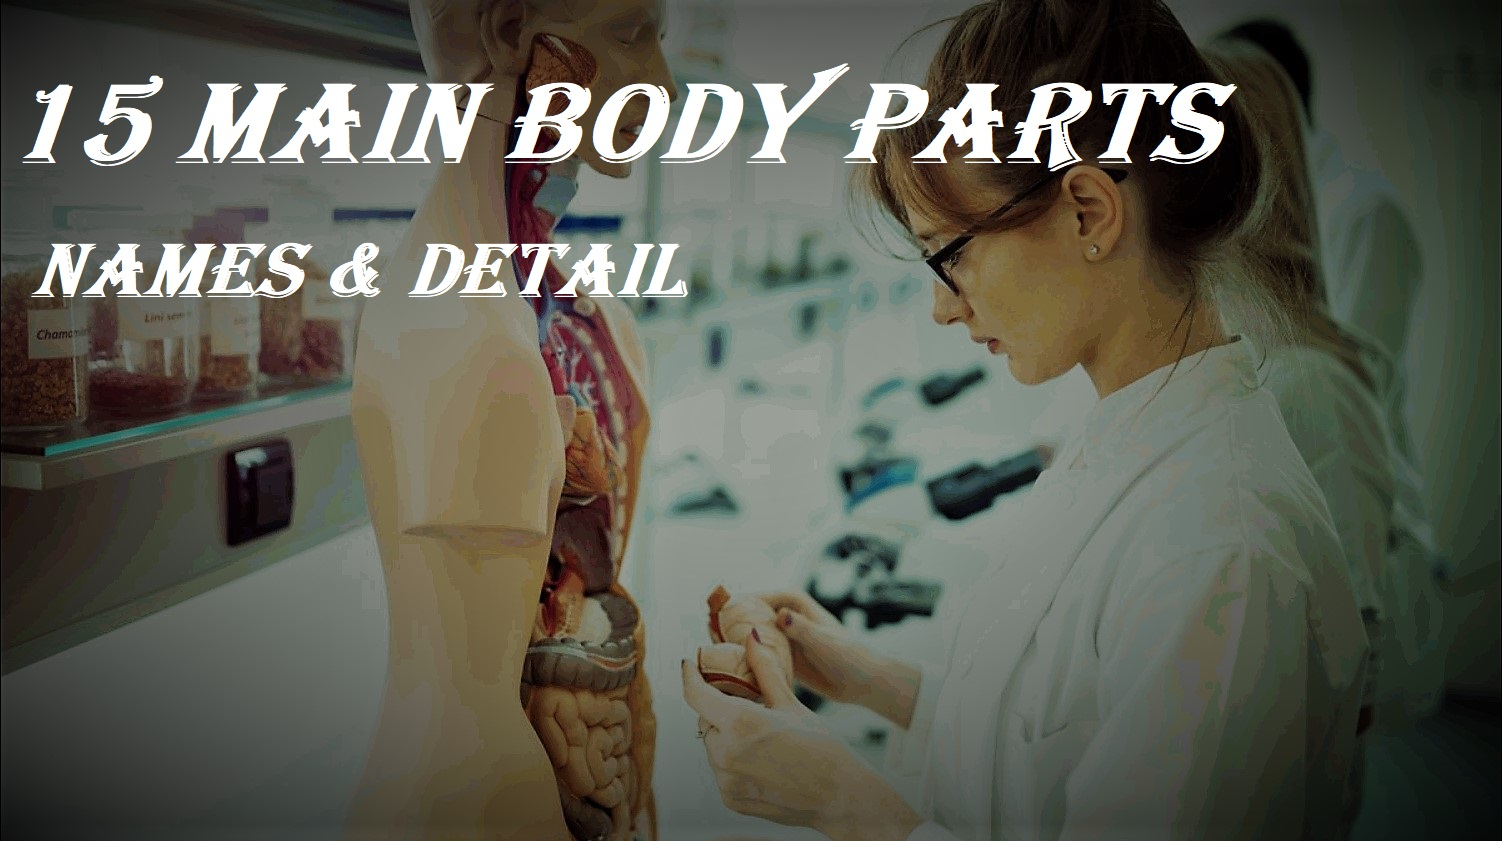 HUMAN BODY PARTS NAME